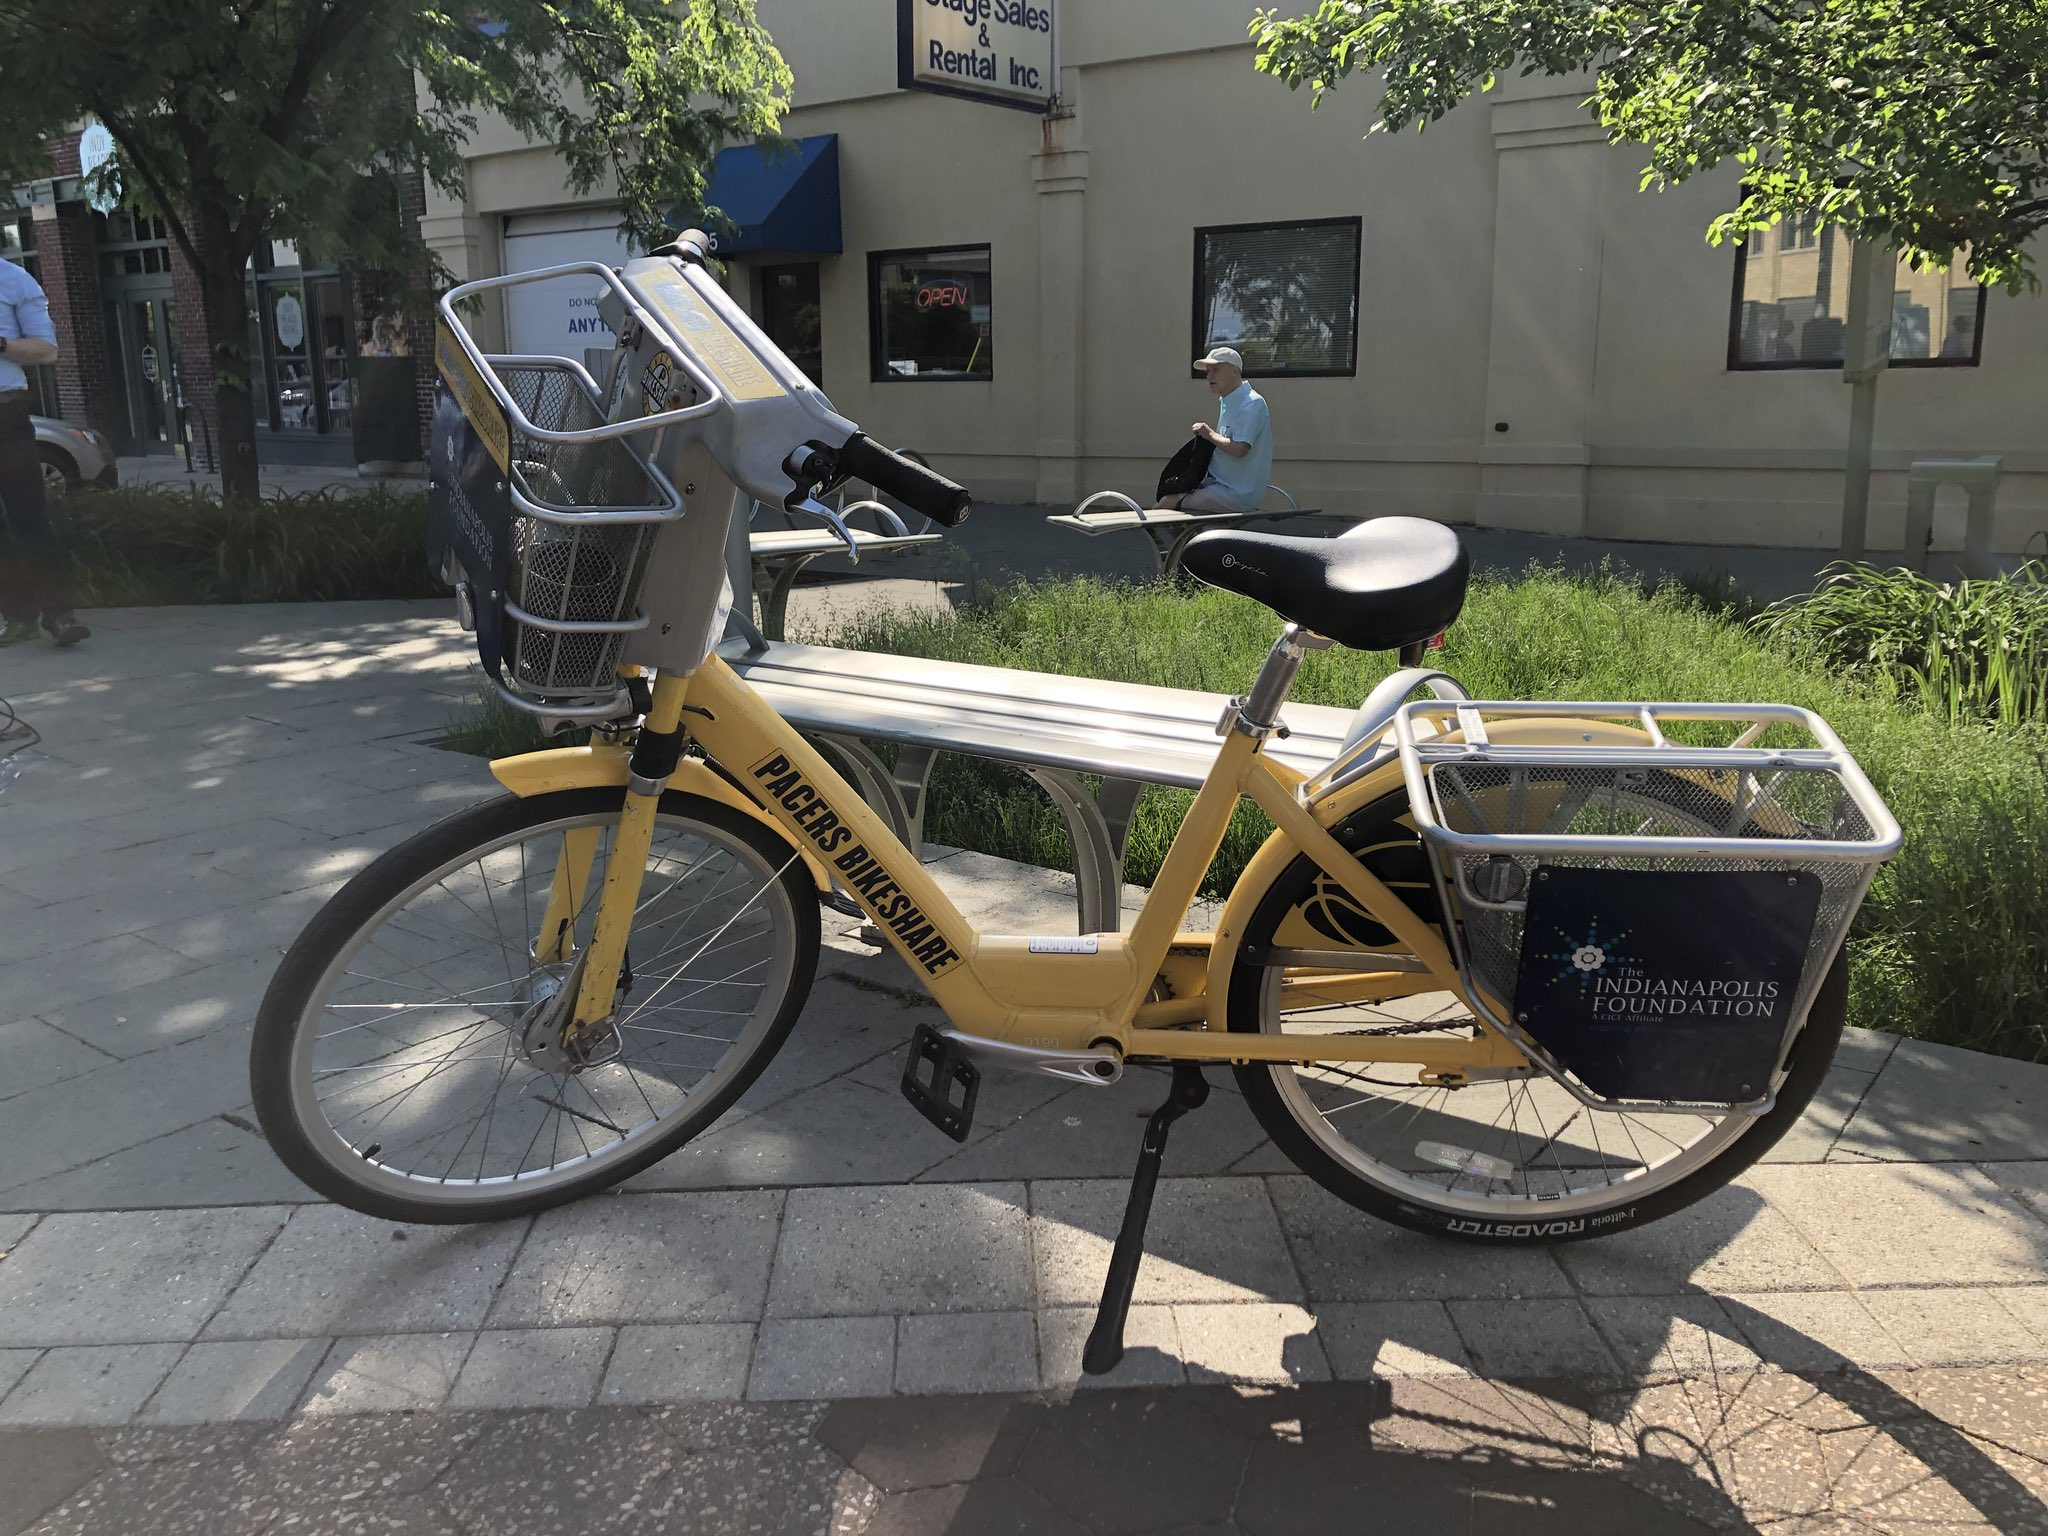 �� @Pacersbikeshare is expanding in 2019! An additional 25 stations and 250 bikes are coming to Indy. https://t.co/GRQ3sdIO2N